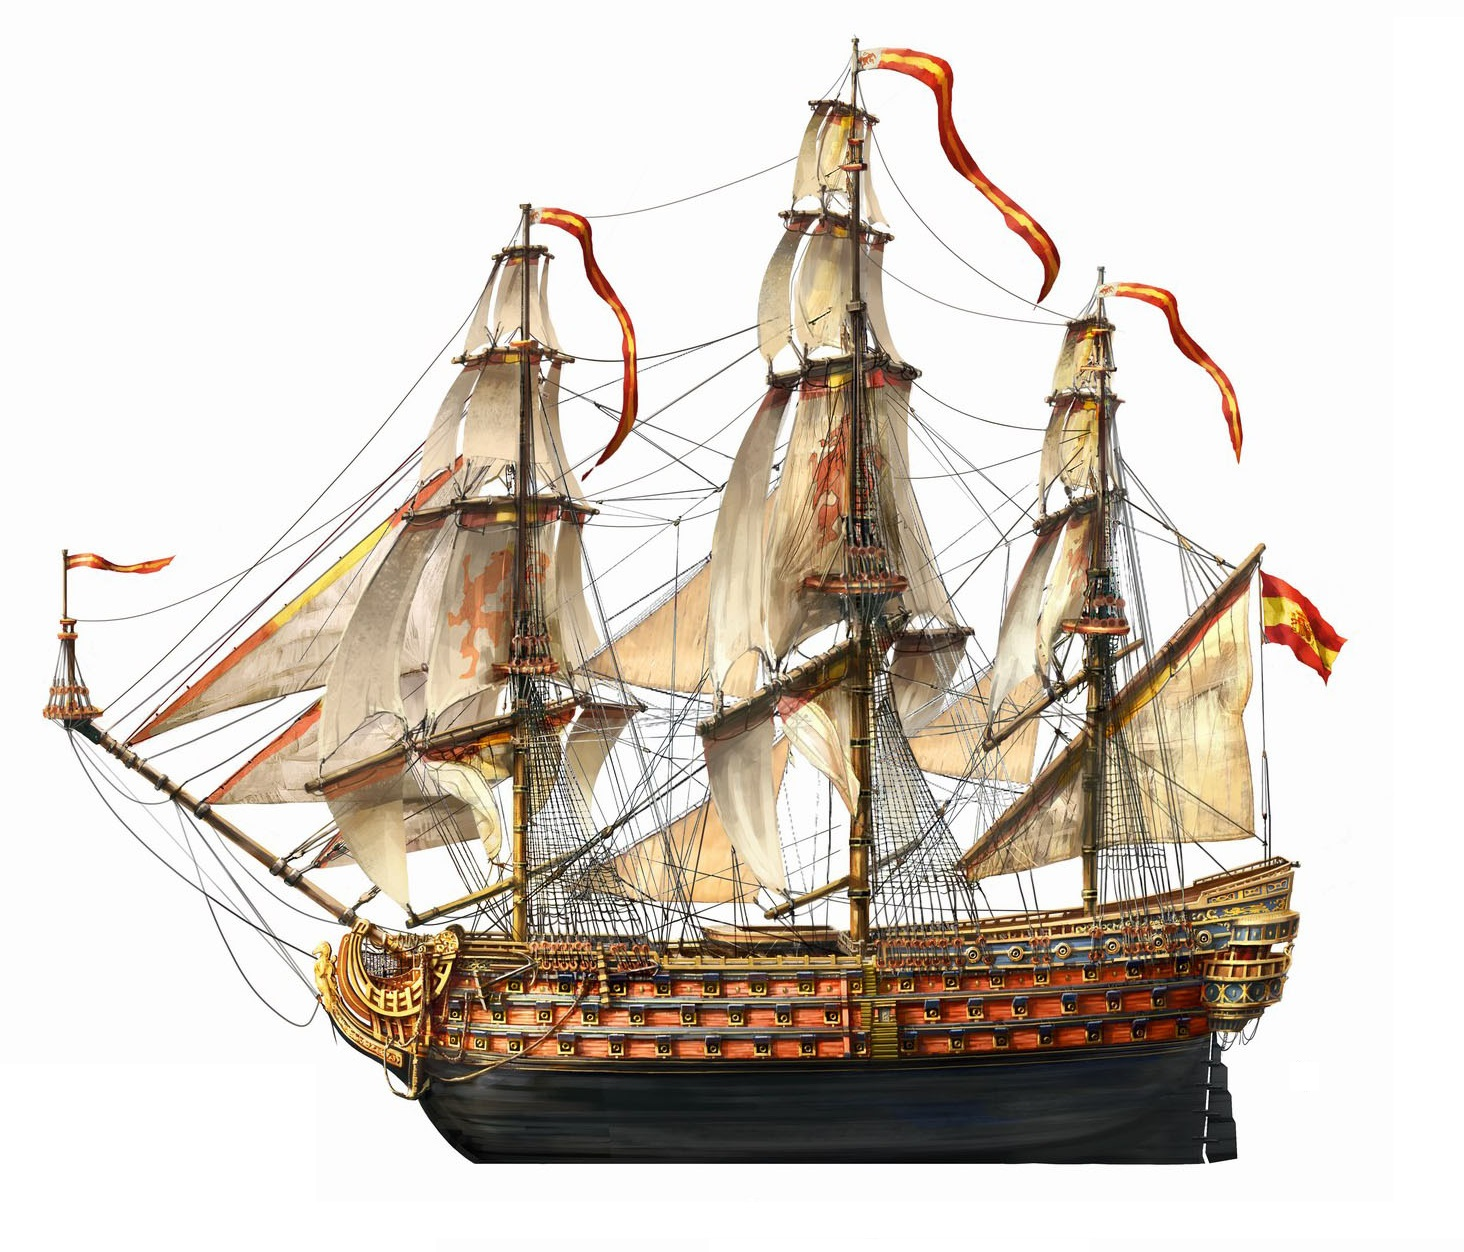 Assassin_s_Creed_IV_Black_Flag_-Ship-_SpanishMilitaryNavalShips_ManOfWar_by_max_qin.jpg